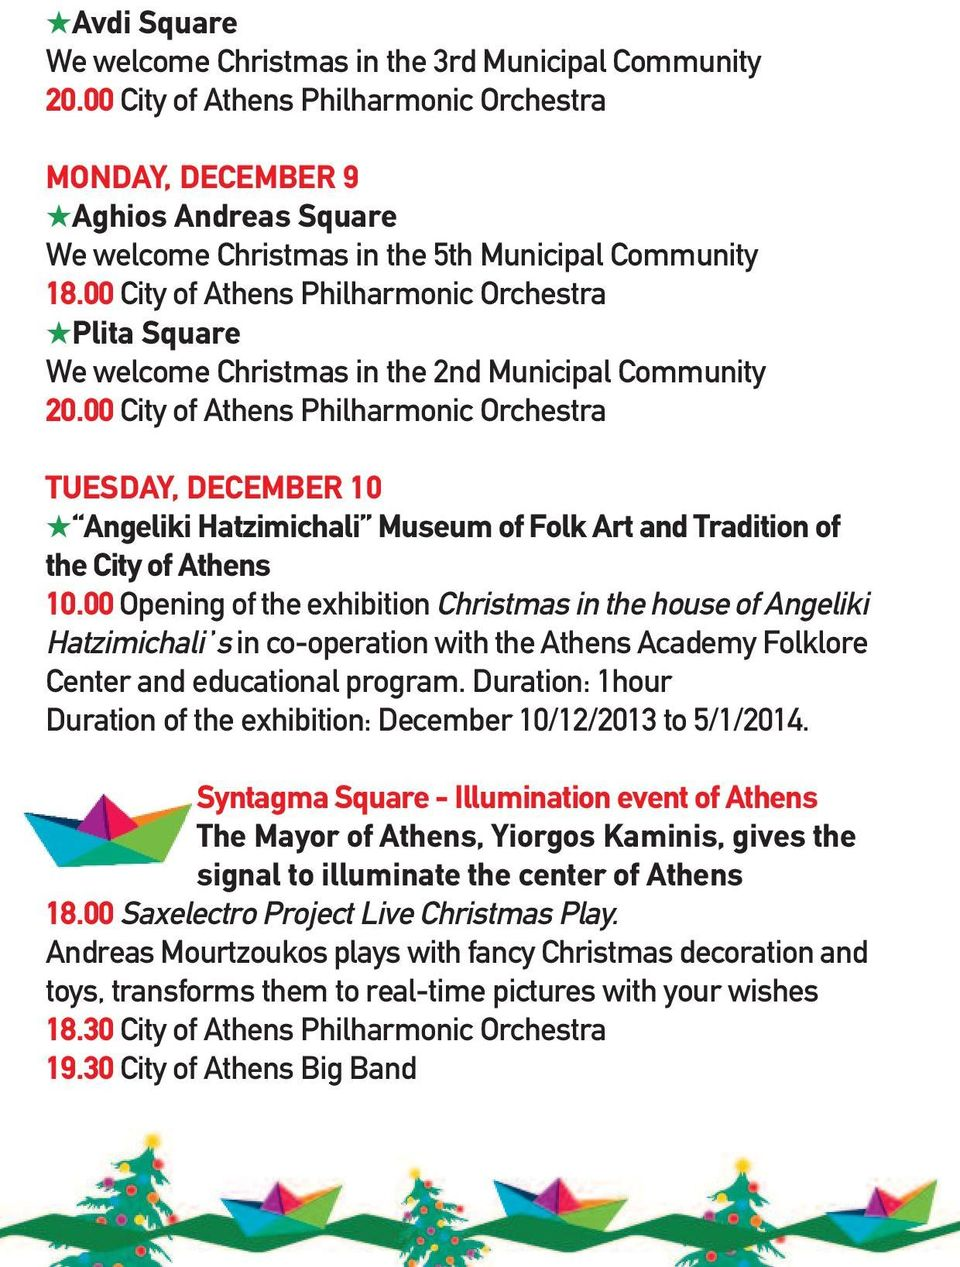 00 City of Athens Philharmonic Orchestra Plita Square We welcome Christmas in the 2nd Municipal Community 20.